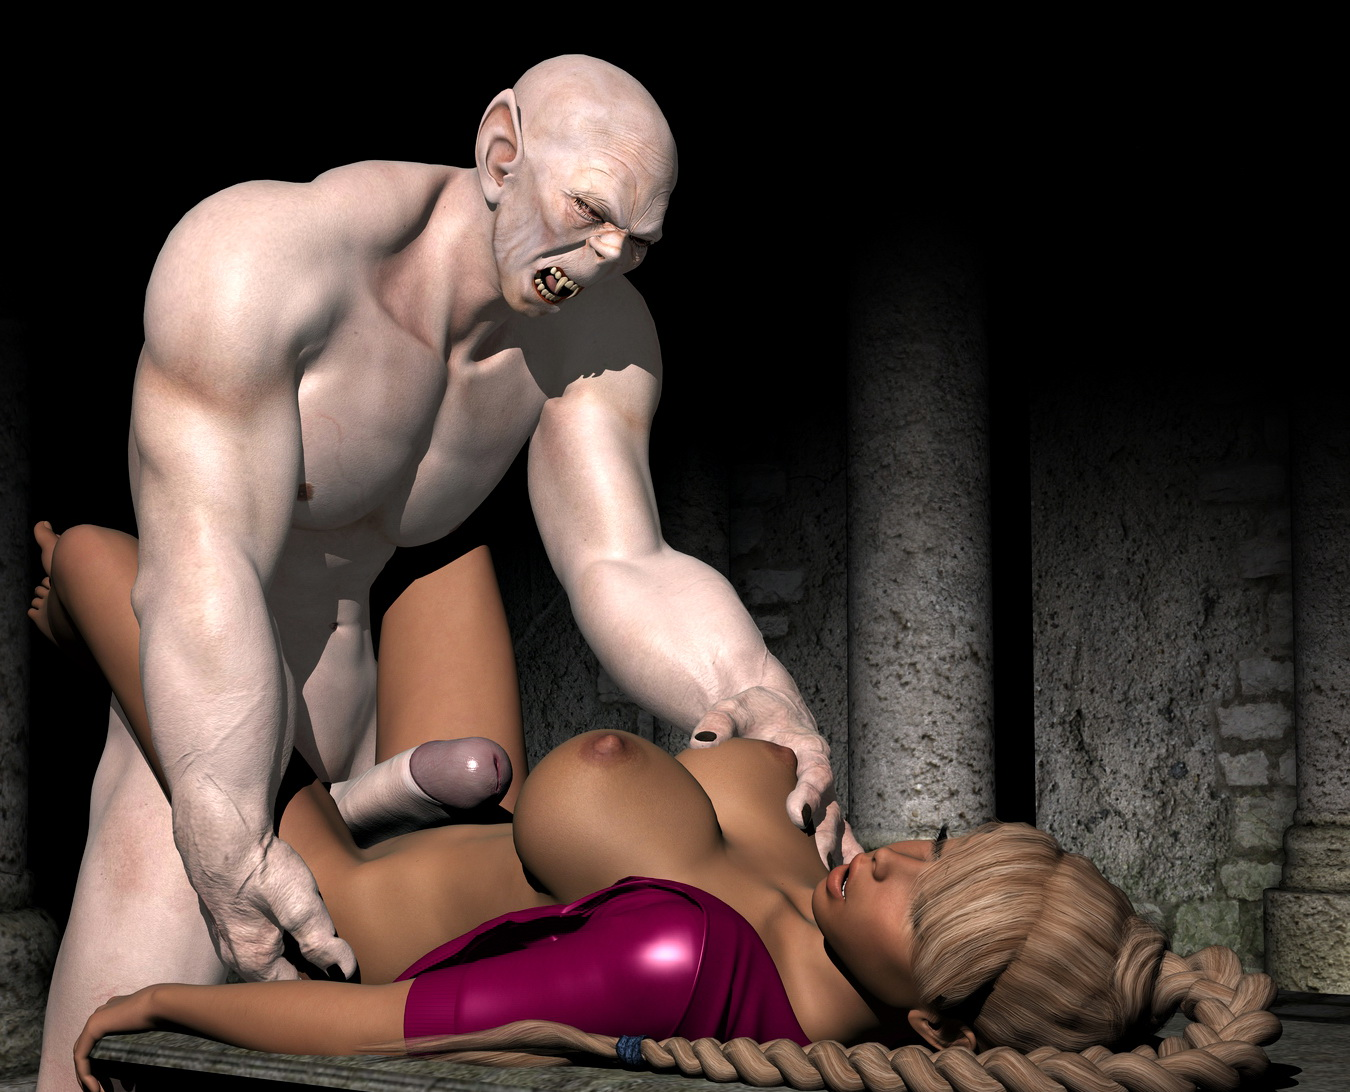 3d animated monster fuck girls videos free  porn scene